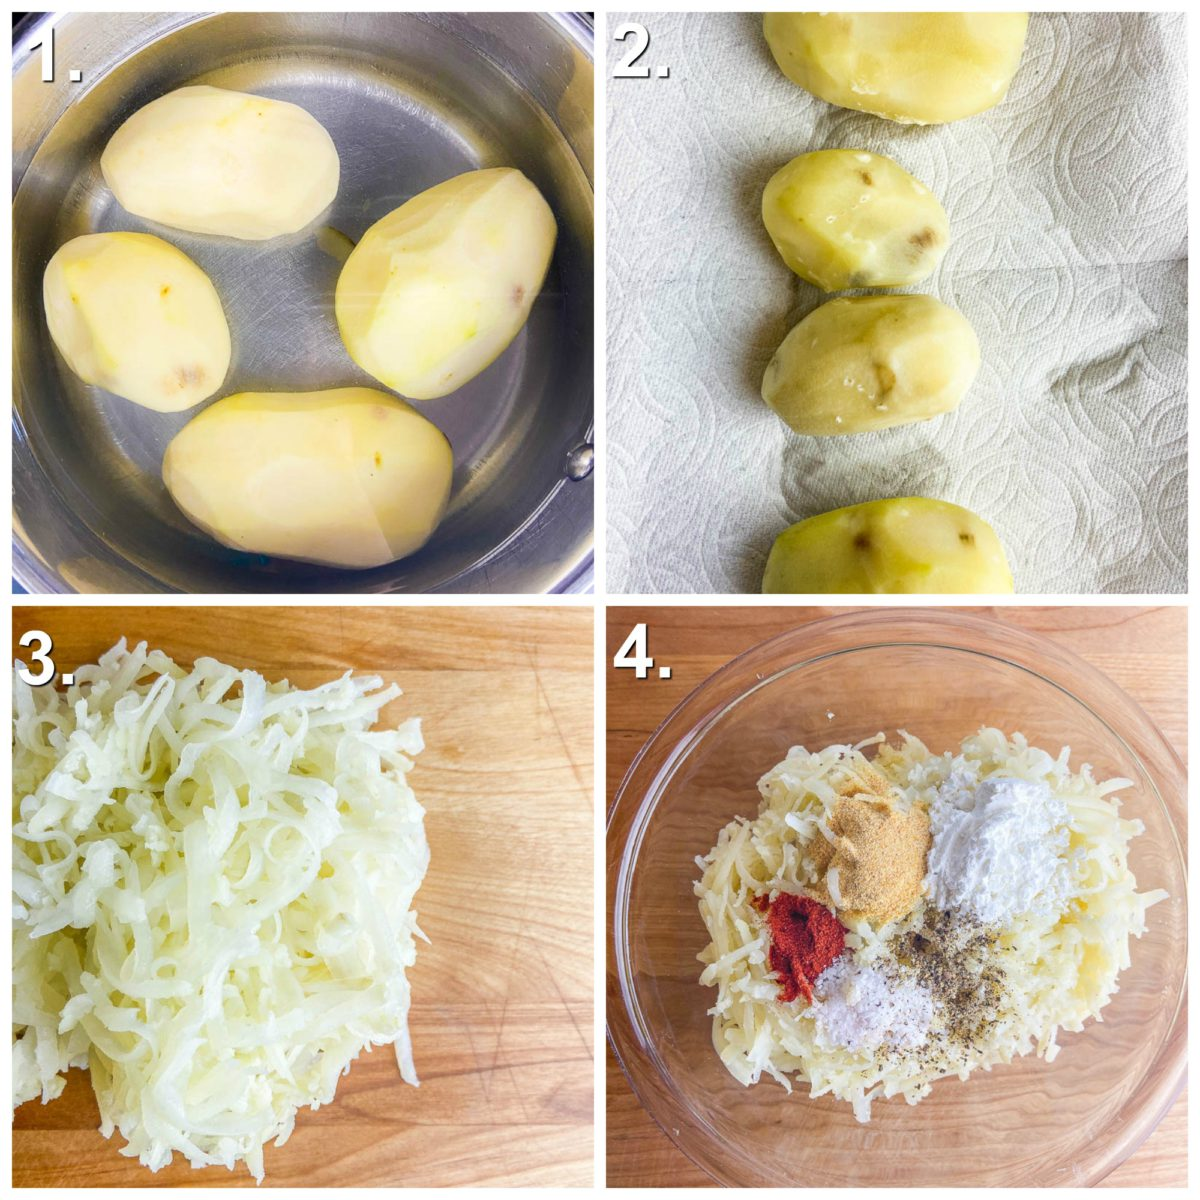 Step by Step Photos for tater tot recipe.